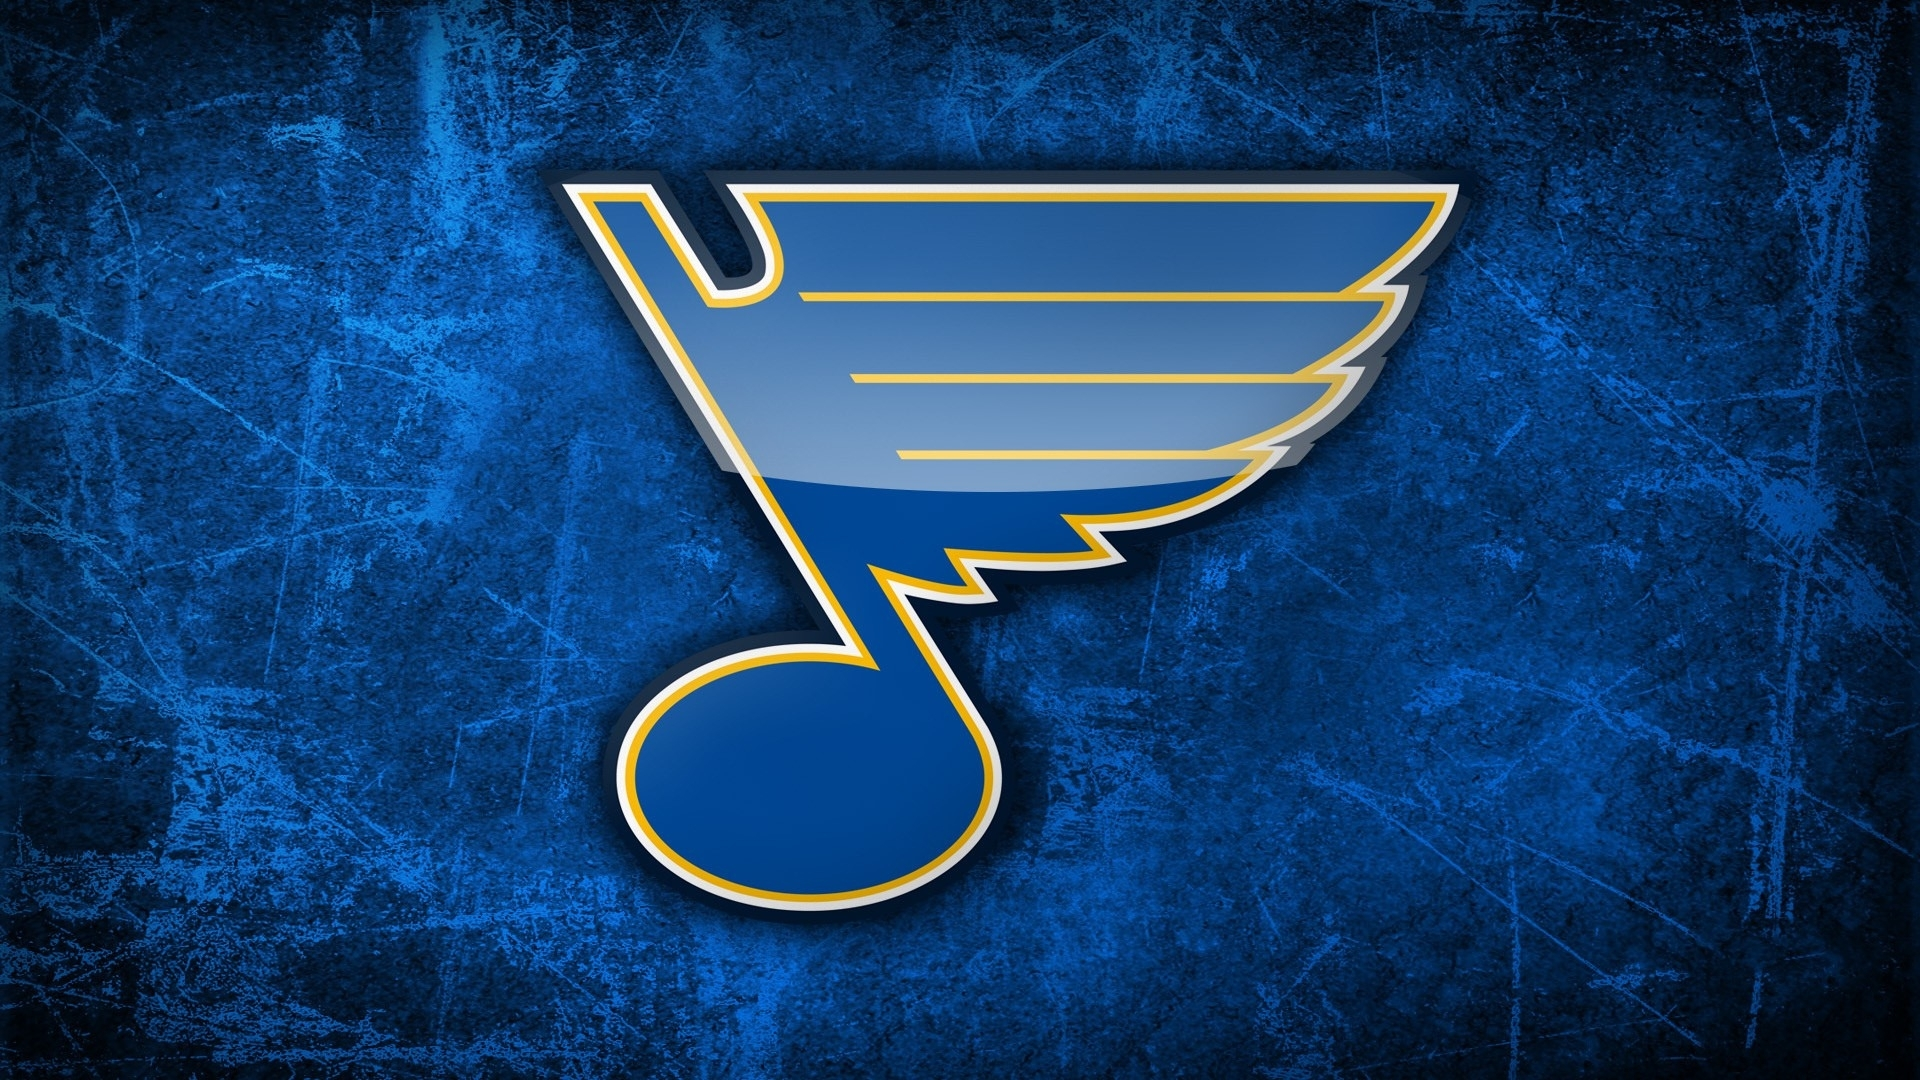 nhl st.louis blues full hd fond d'écran and arrière-plan | 1920x1080